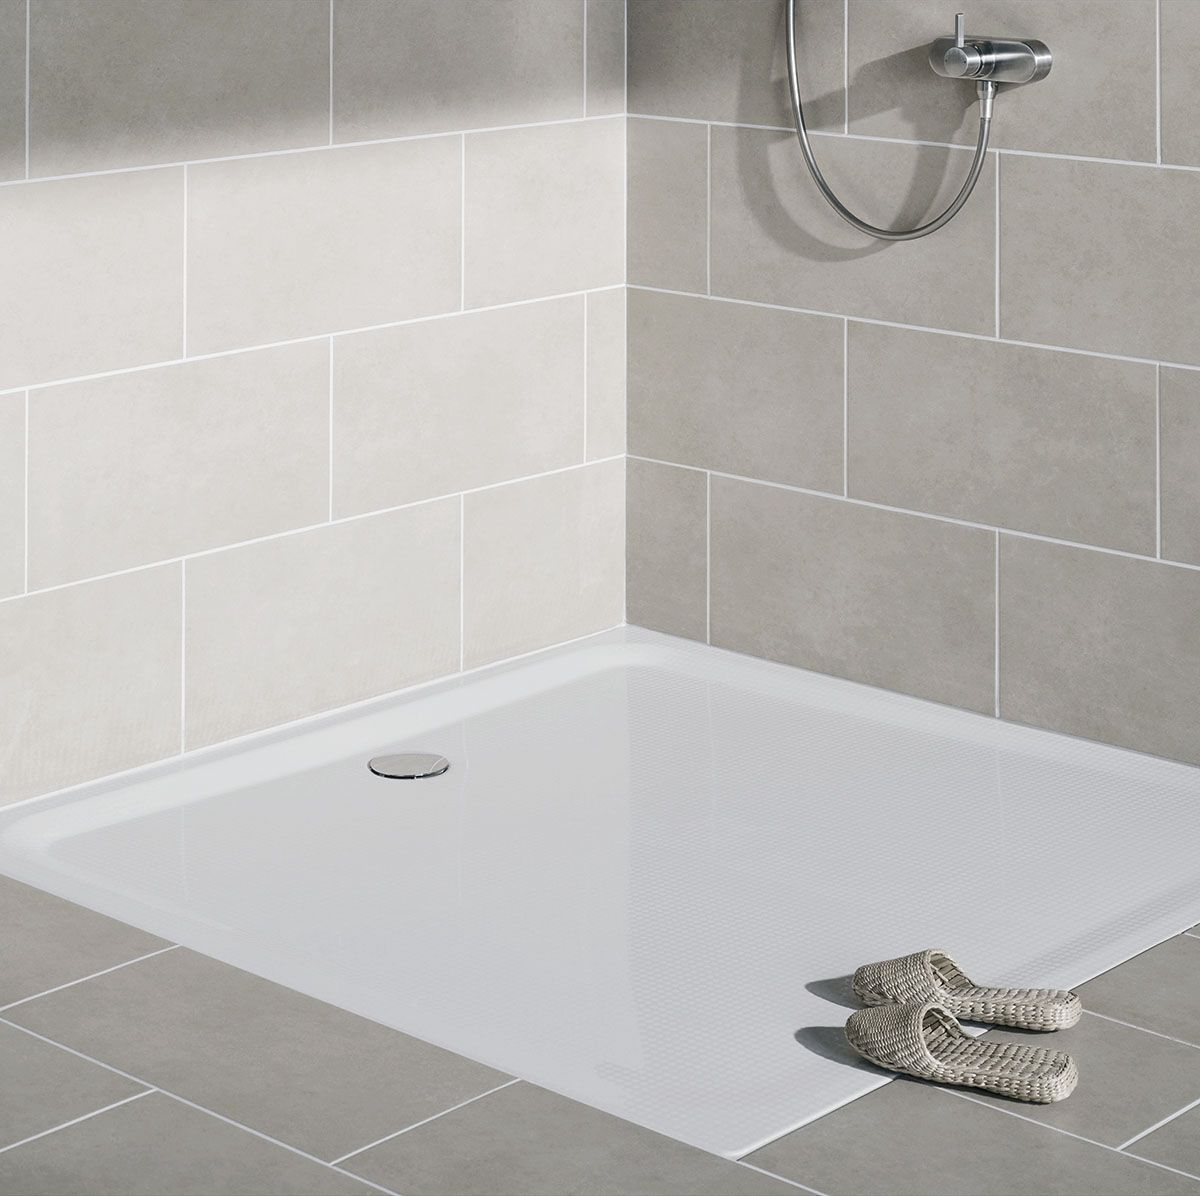 Combining Comfort And Elegant Design This Tray Blends Harmoniously Into Any Bathroom Design Designed And Manufactured In G In 2020 Shower Tray Bathroom Design Shower